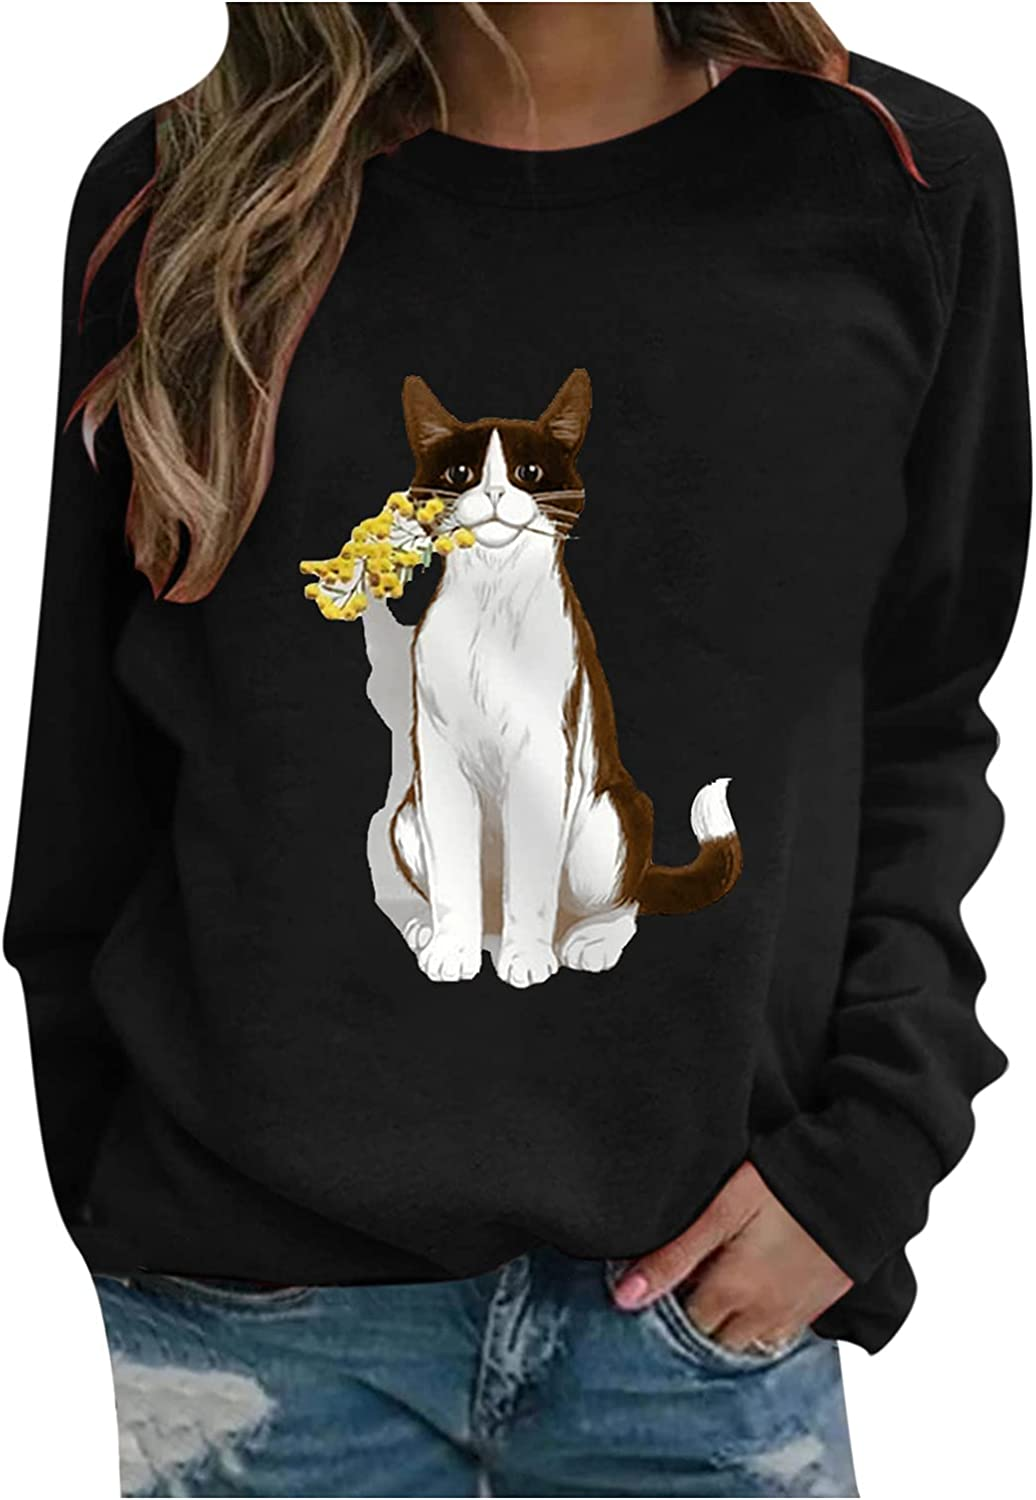 Cardigan Sweaters for Women,Womens Casual Cat Print Sweatshirt Loose Fit Pullover Tops